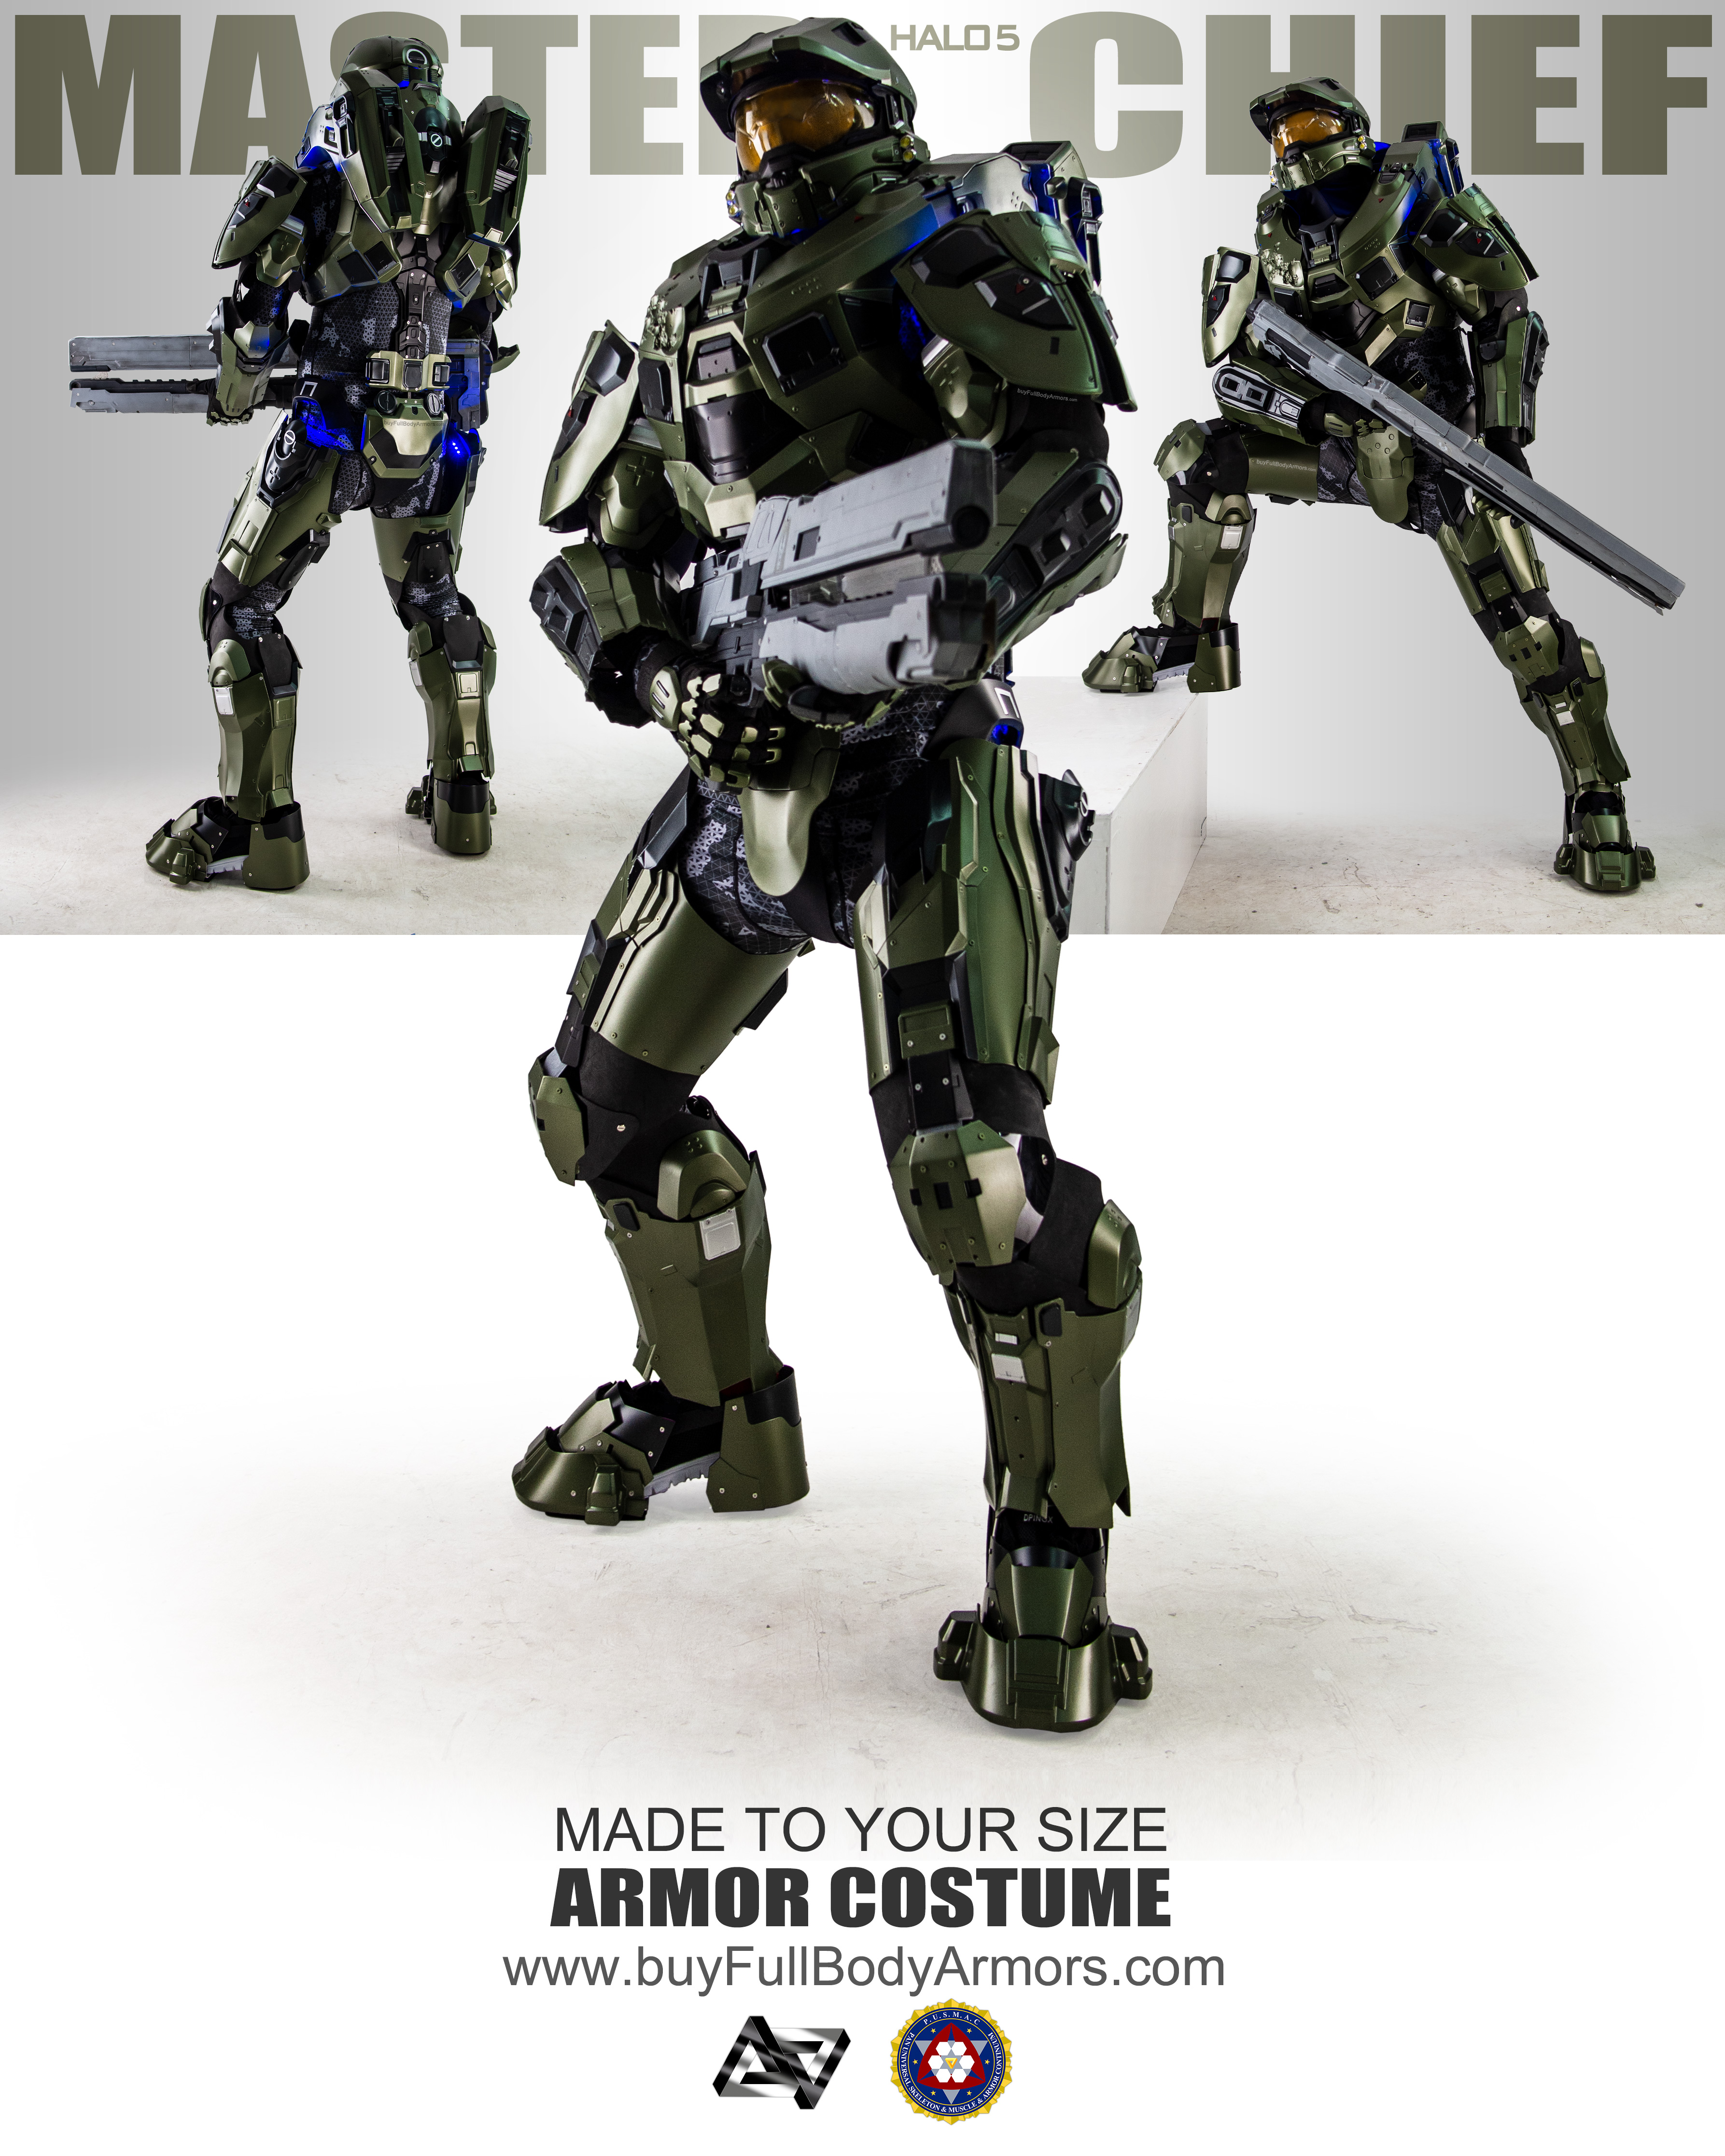 Halo 5 Master Chief Armor Suit Costume poster